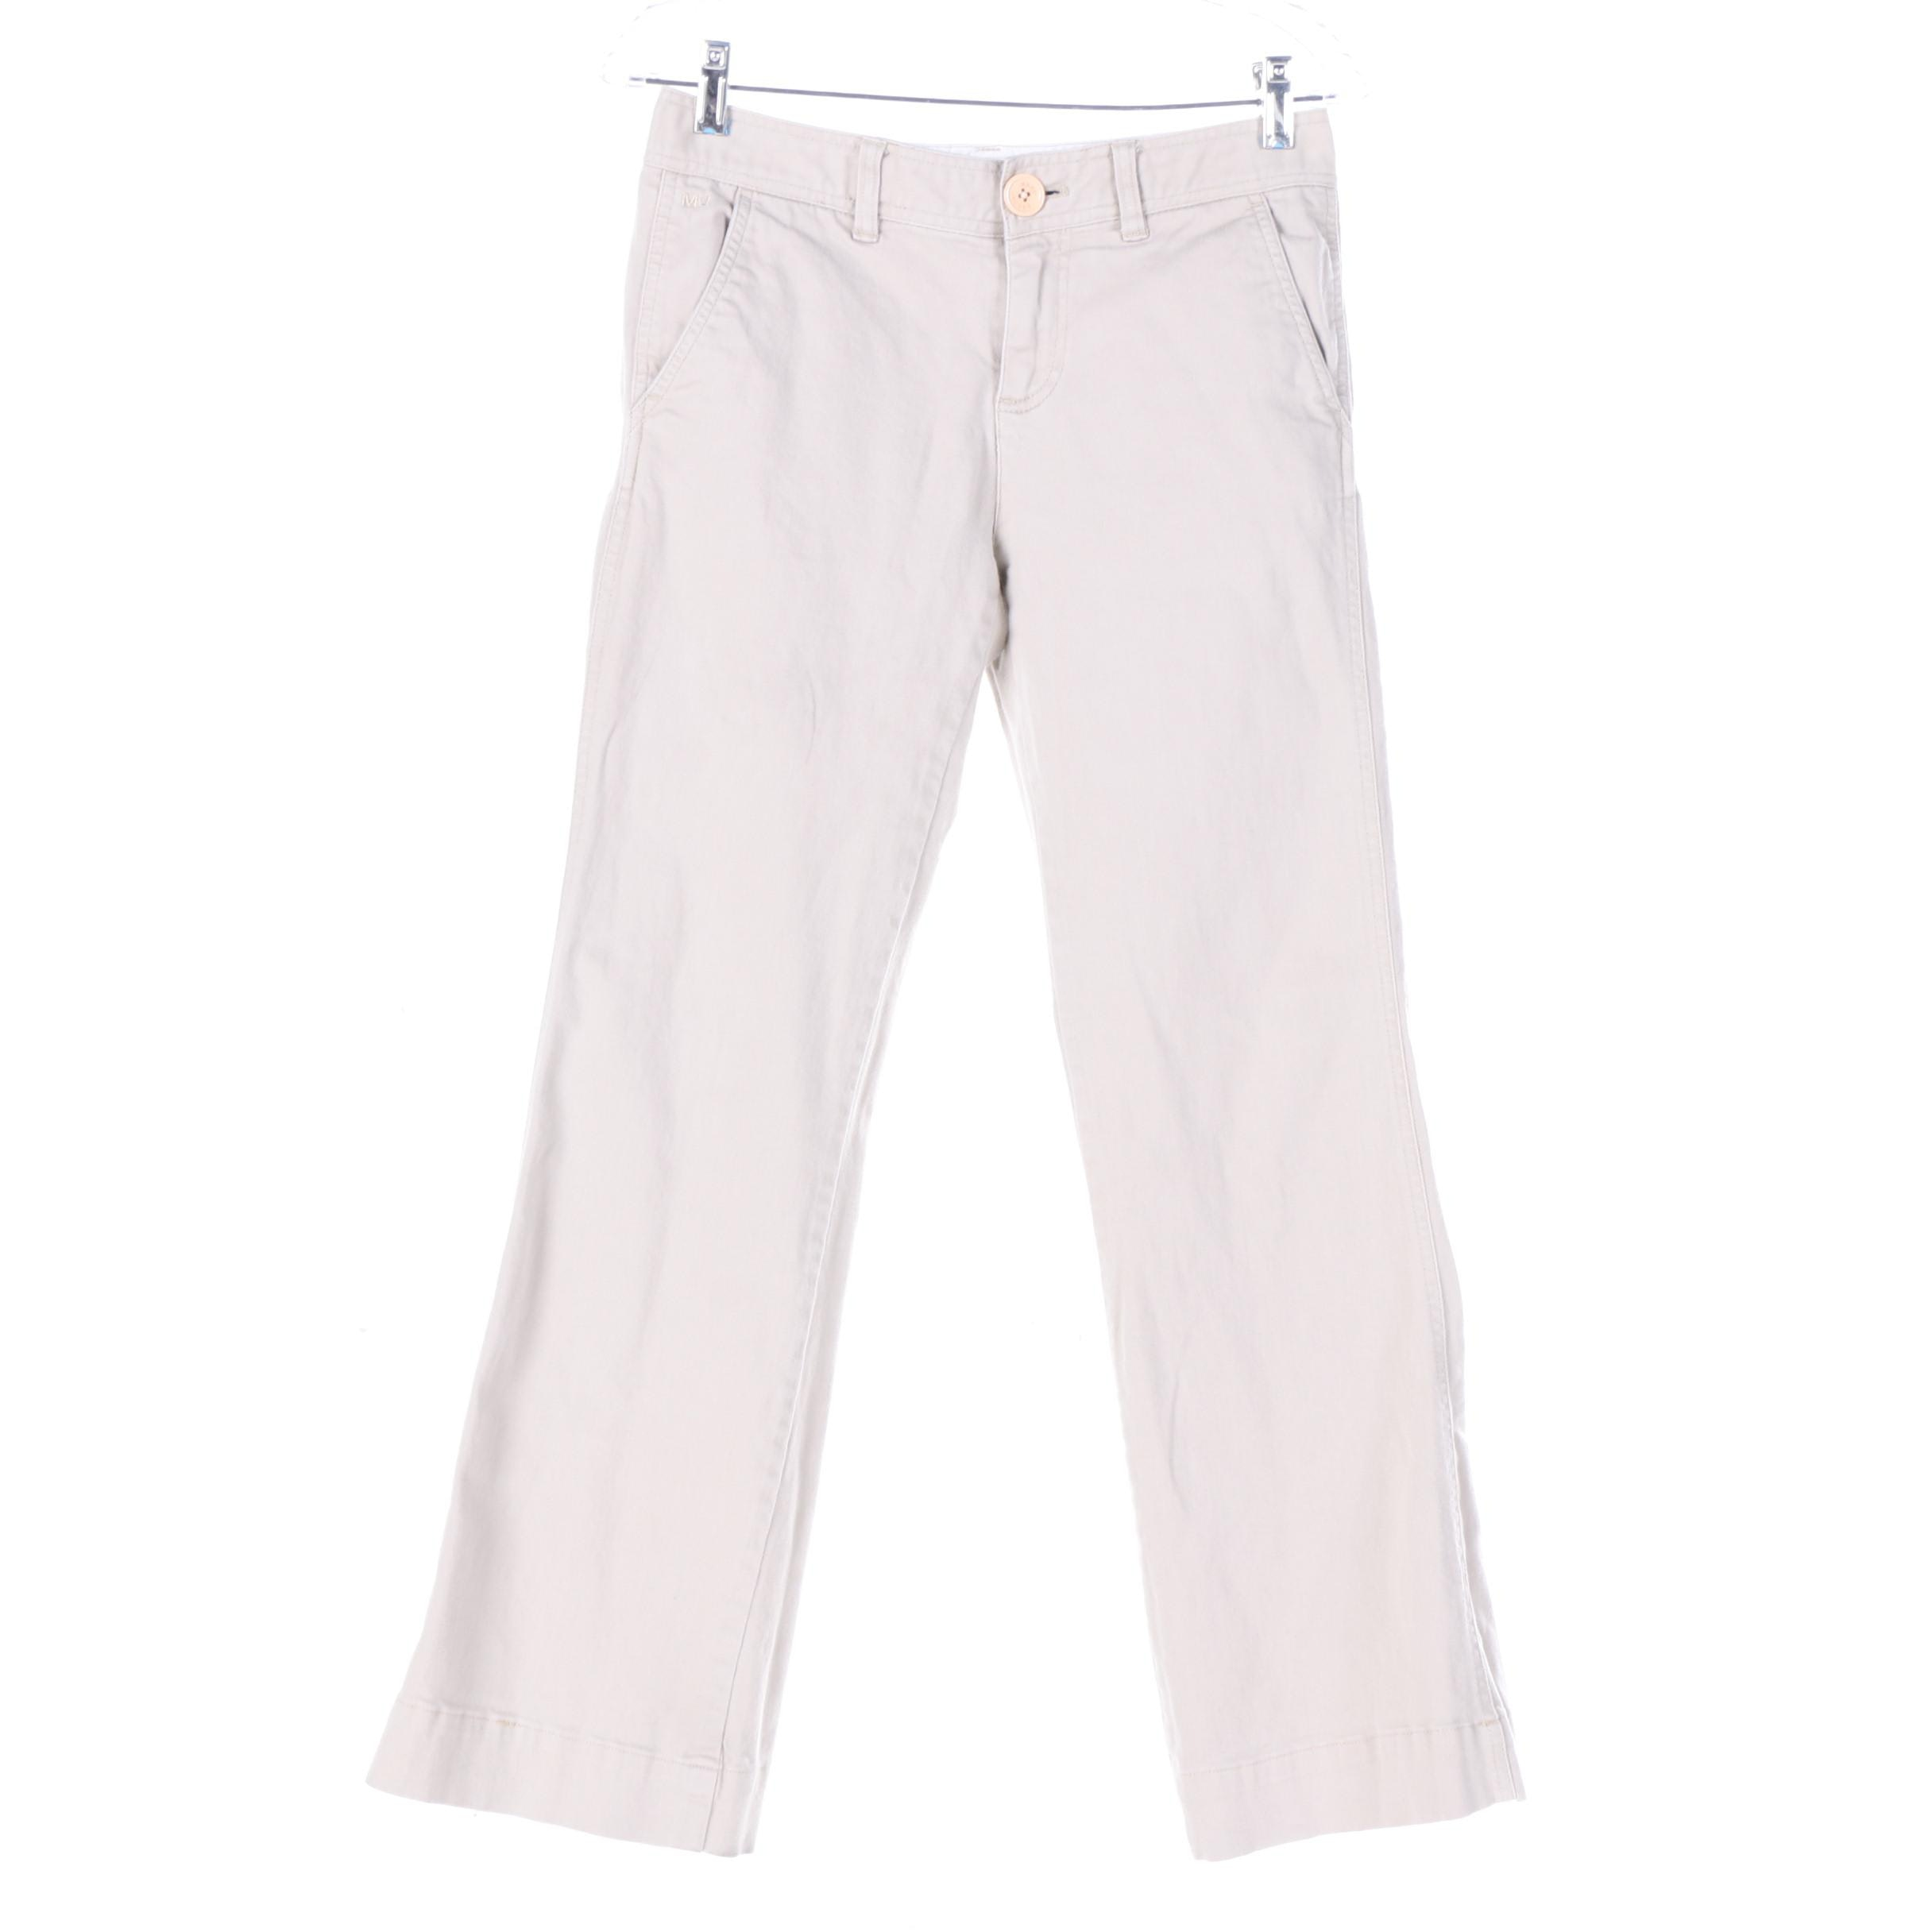 Women's Marc Jacobs Khaki Pants